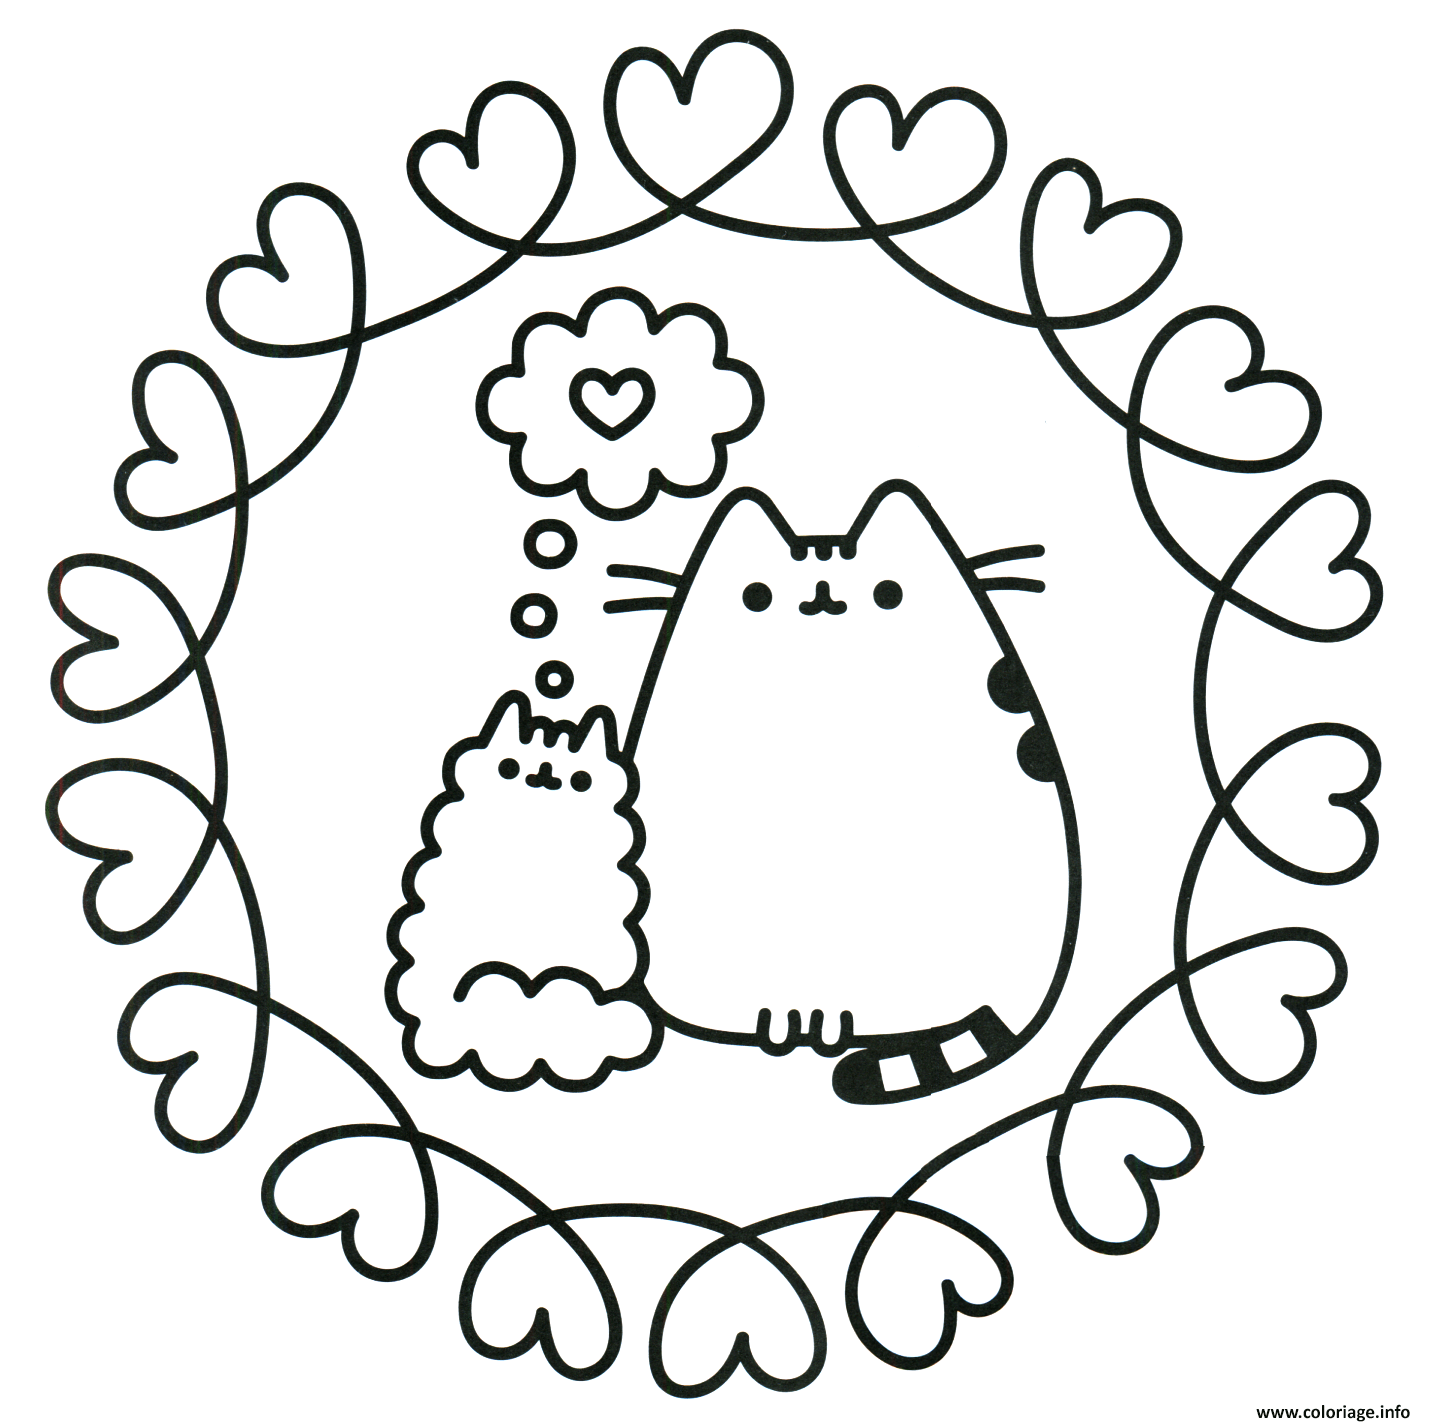 Coloriage Pusheen The Cat En Amour Dessin à Imprimer